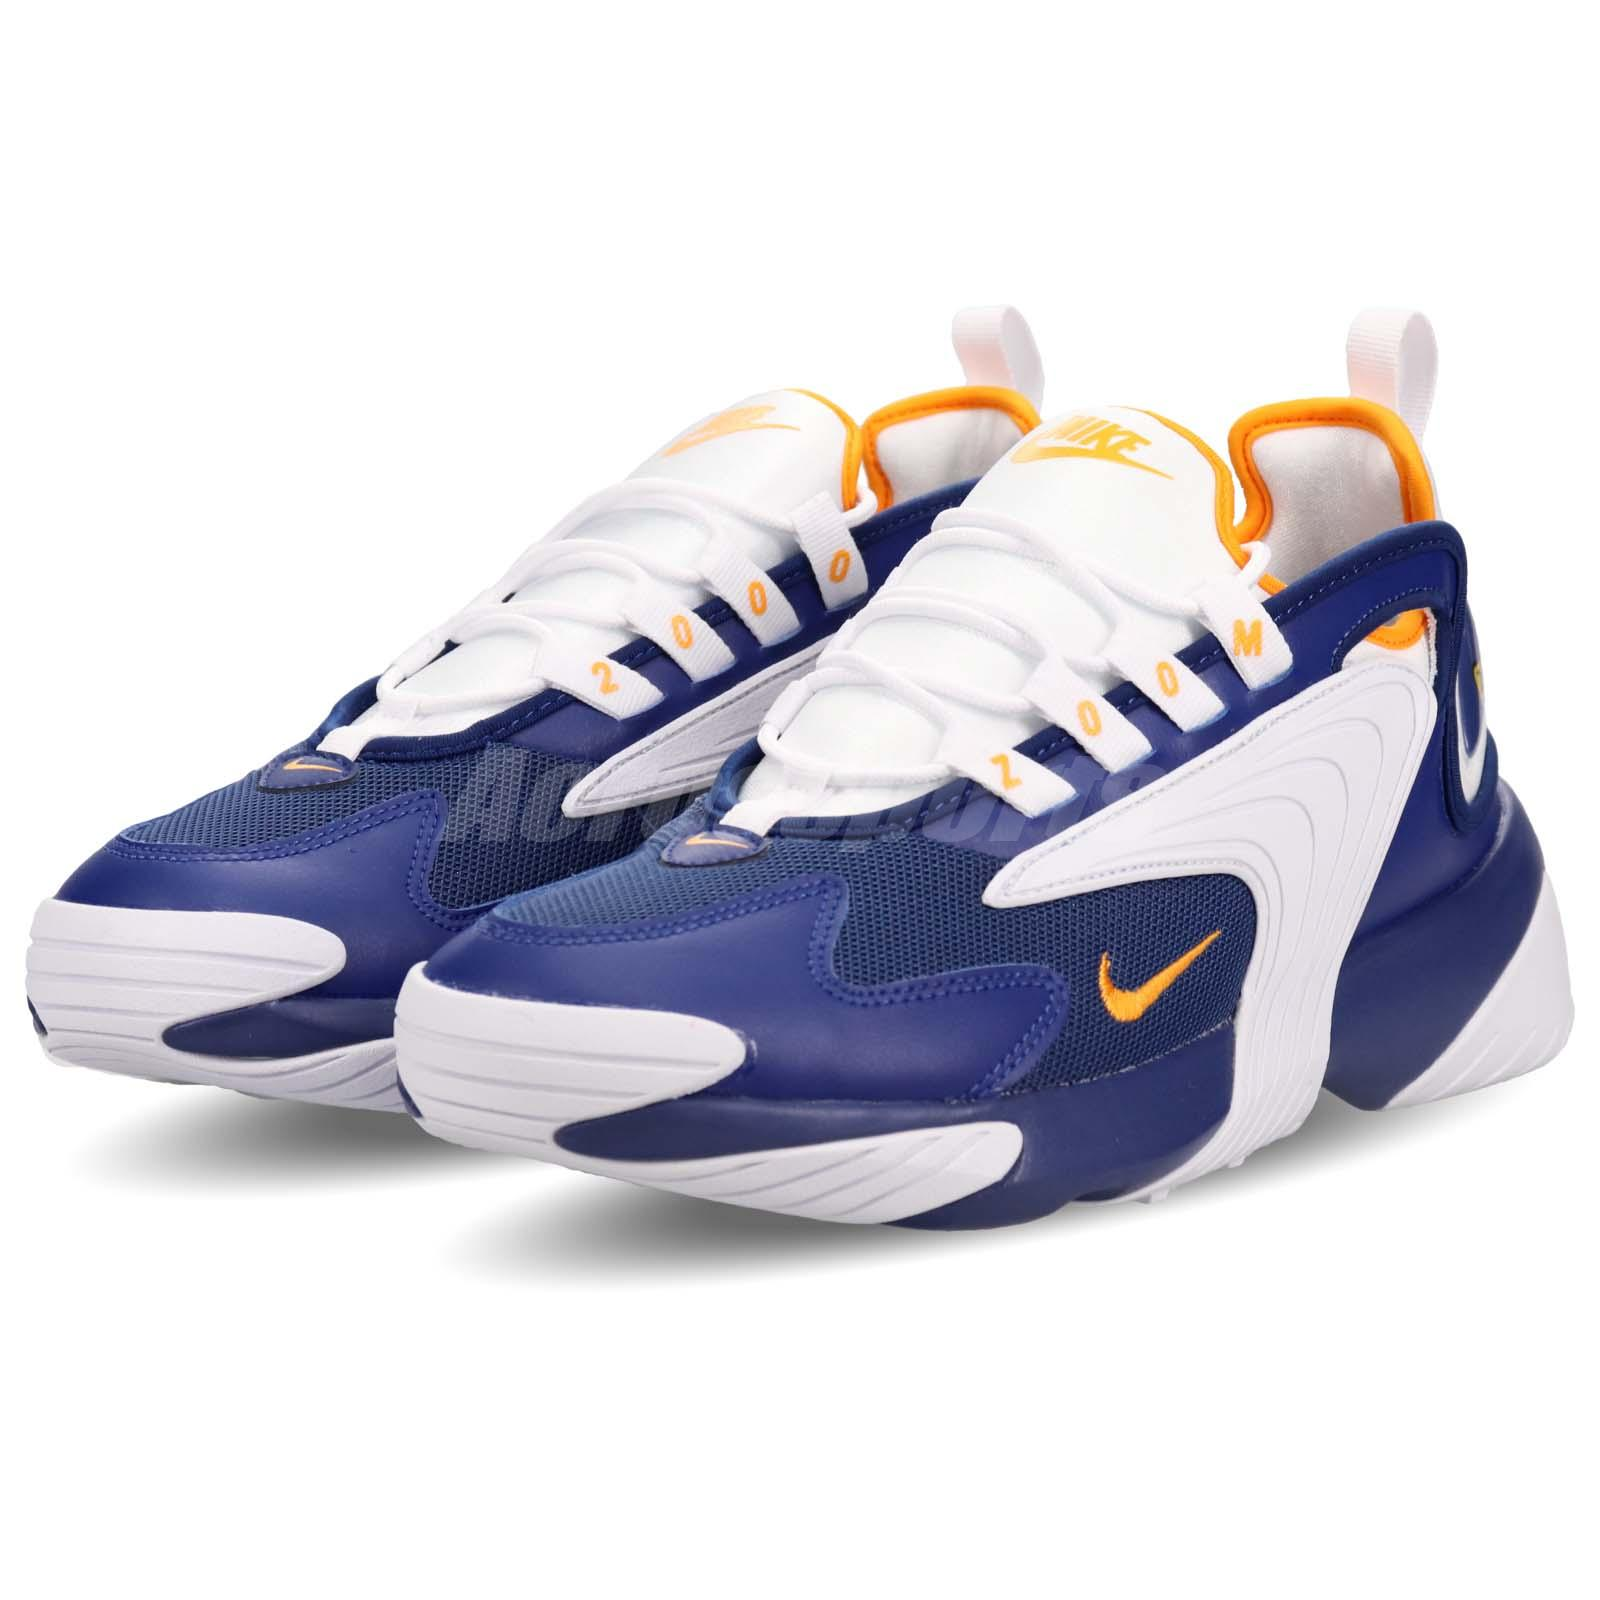 competitive price 3a53a a9235 Details about Nike Zoom 2K Blue Orange White Mens Running Shoes Retro  Sneakers AO0269-400